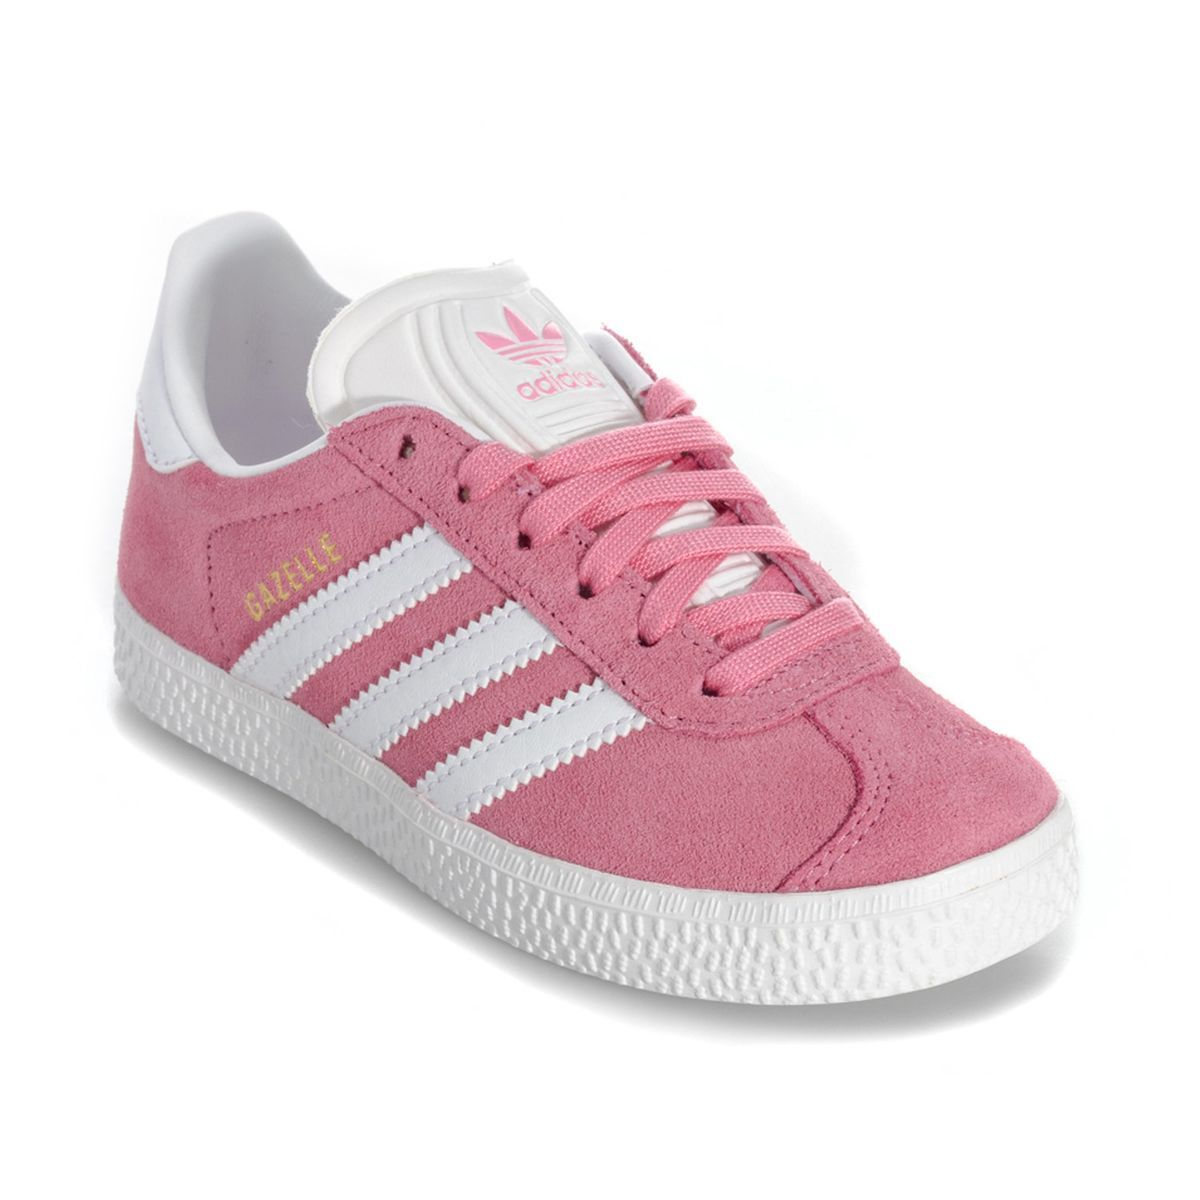 chaussures fille 28 adidas